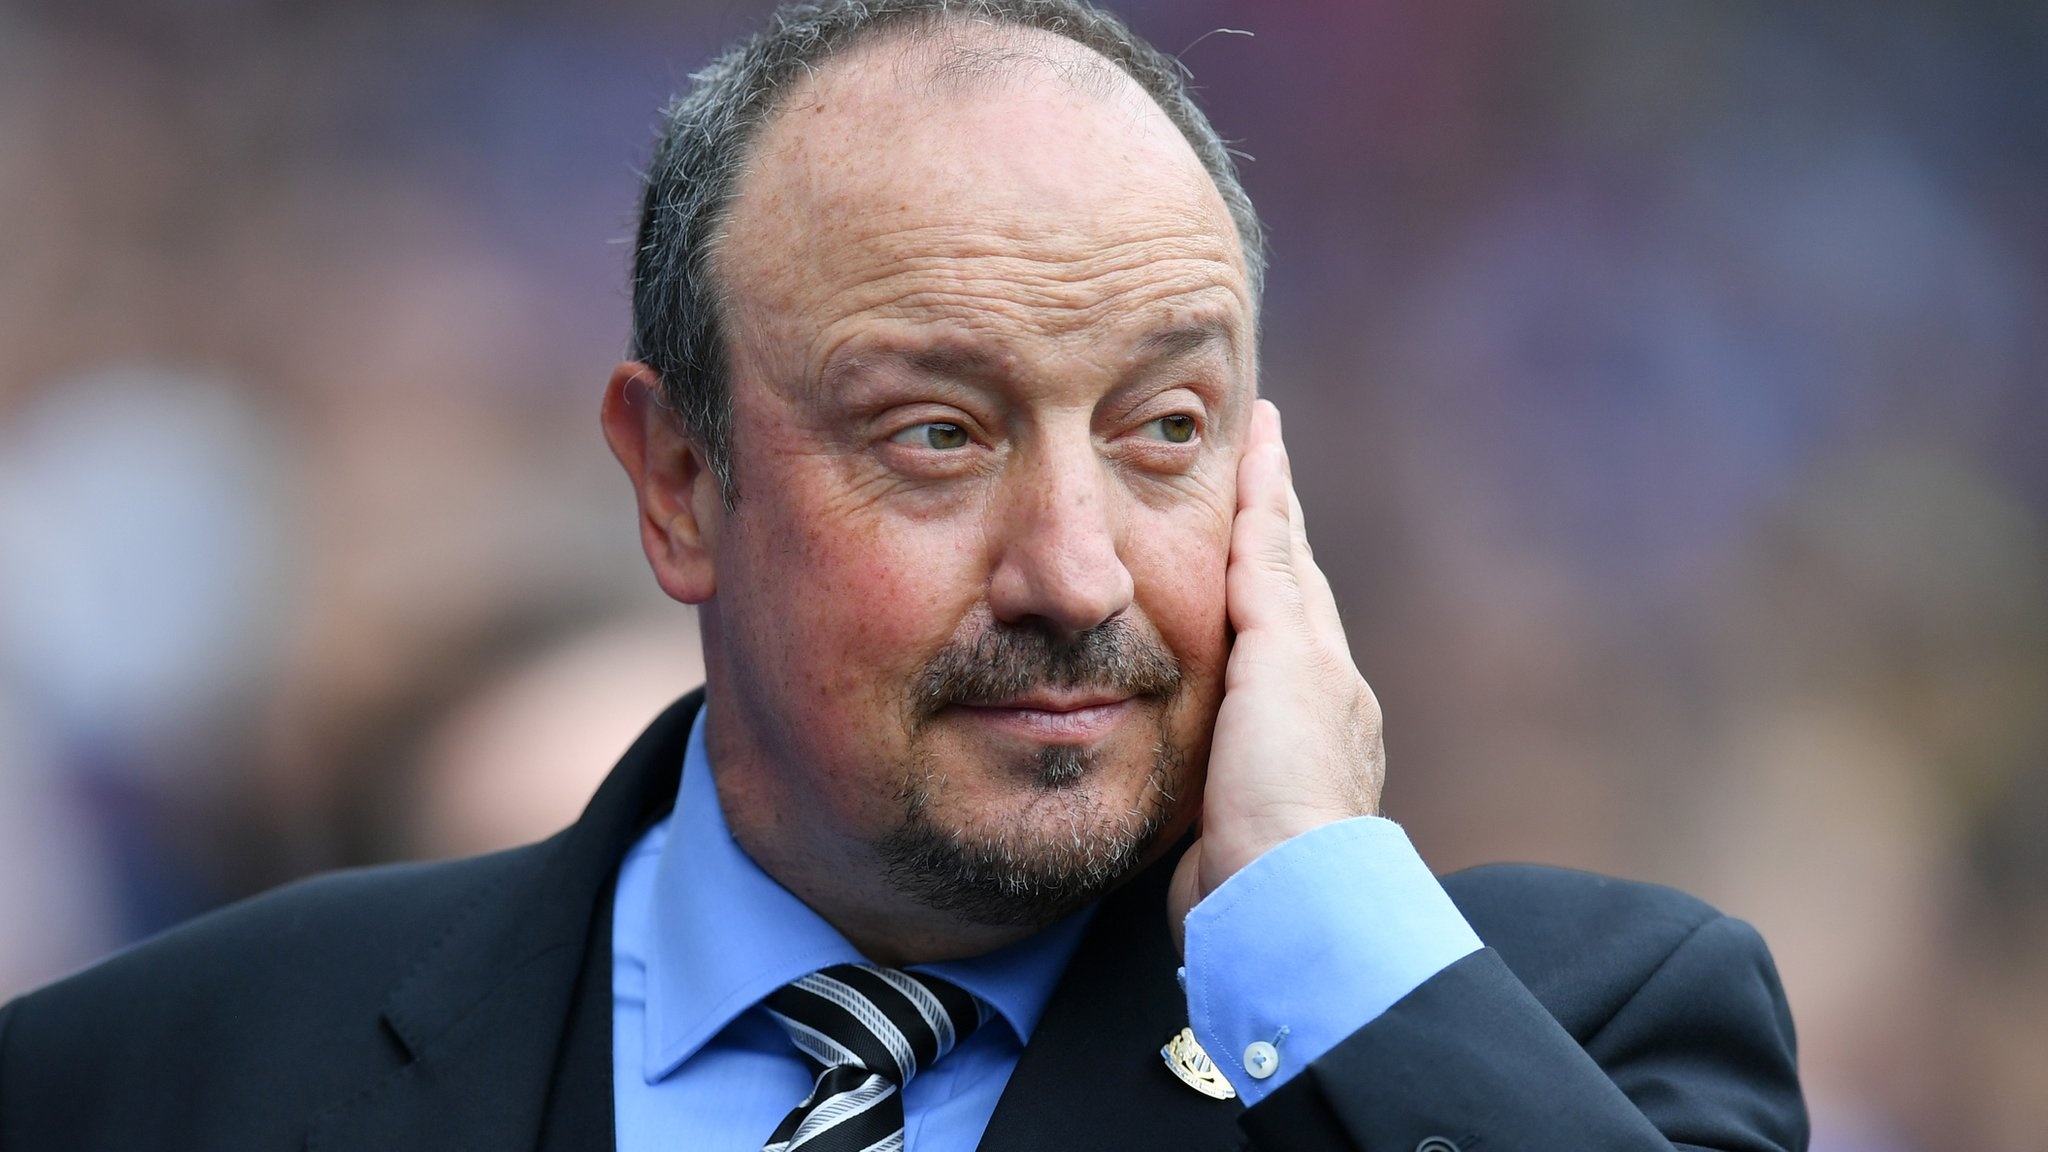 Cardiff City 0-0 Newcastle United: Rafa Benitez 'can't complain' with Cardiff result